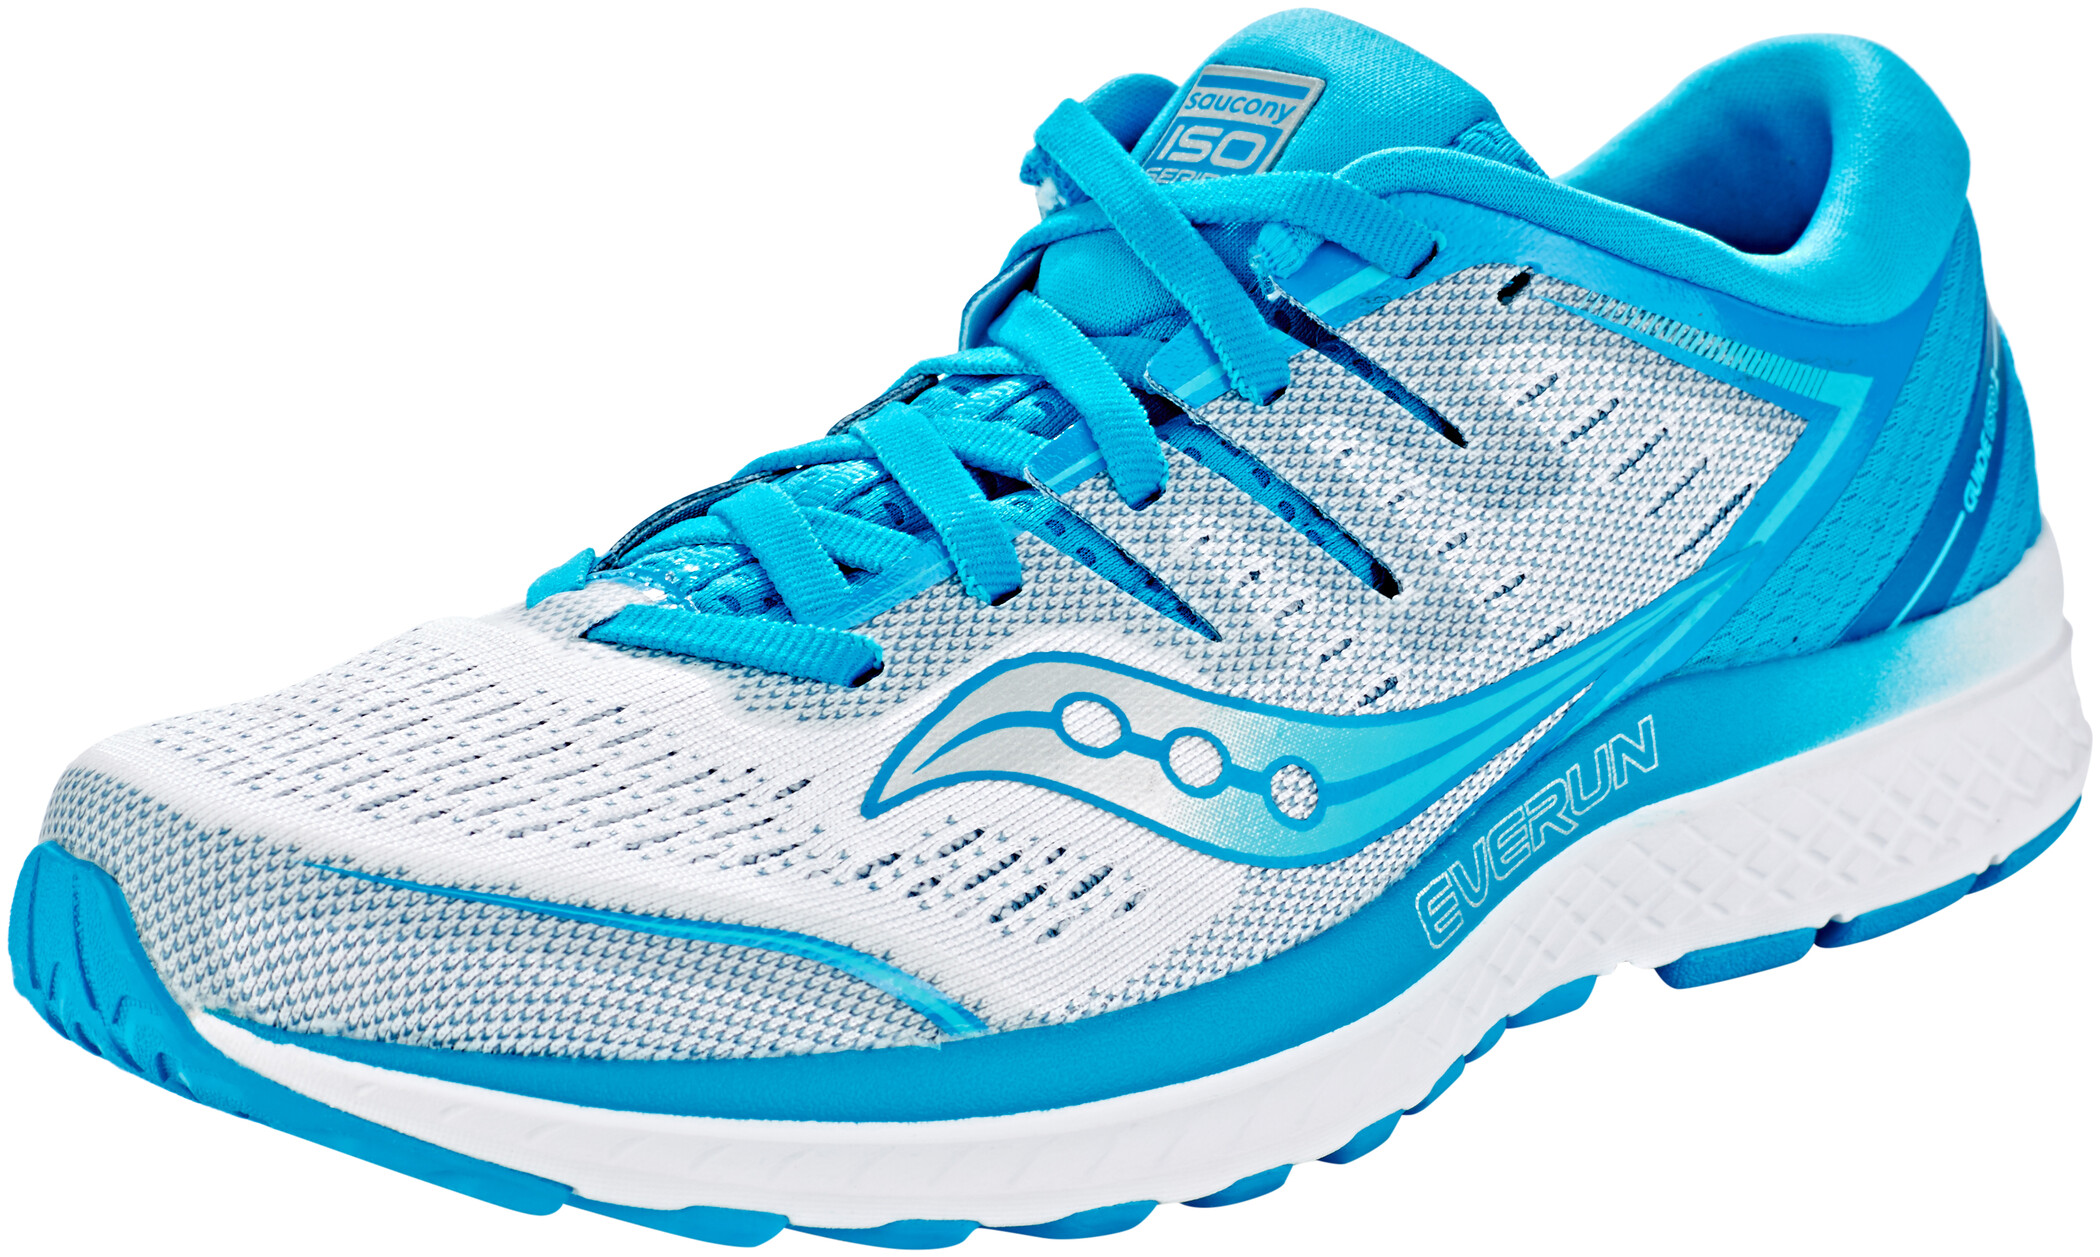 new arrivals 83078 db46a saucony Guide ISO 2 Shoes Women Blue.jpg